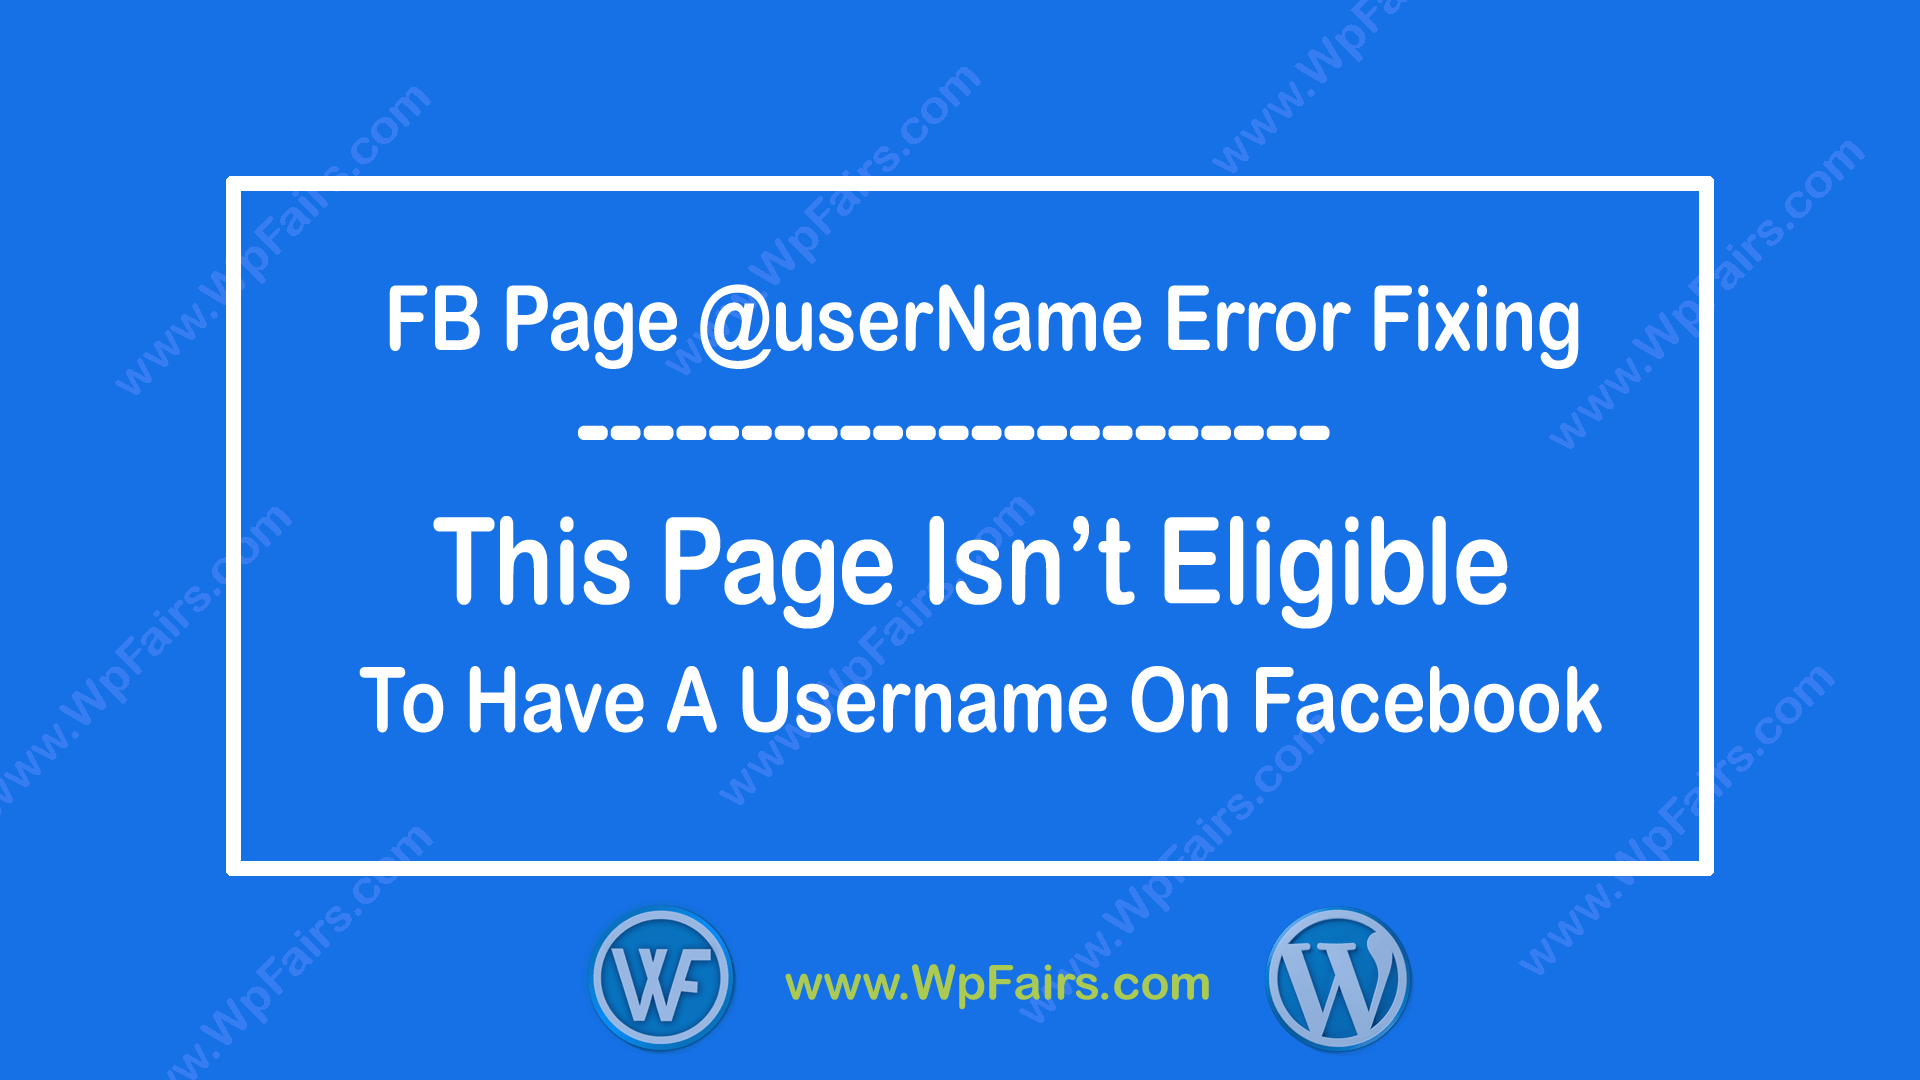 This Page Isn't Eligible To Have A Username On Facebook-FB Error Fixing-WpFairs